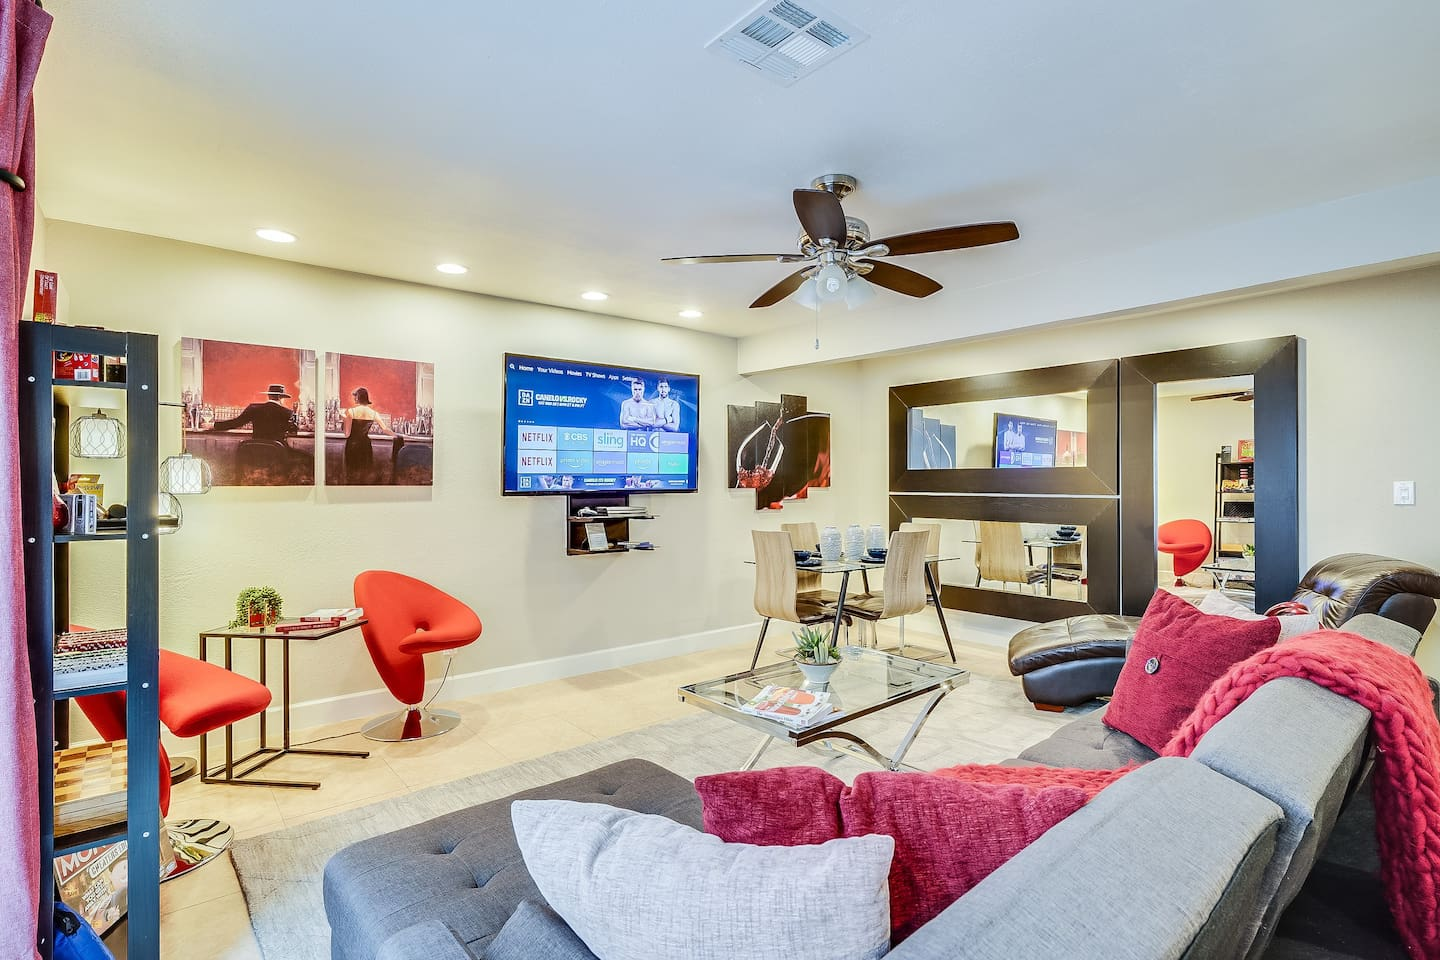 Interior decorate inspired great room w/65 inch Smart TV with Cable